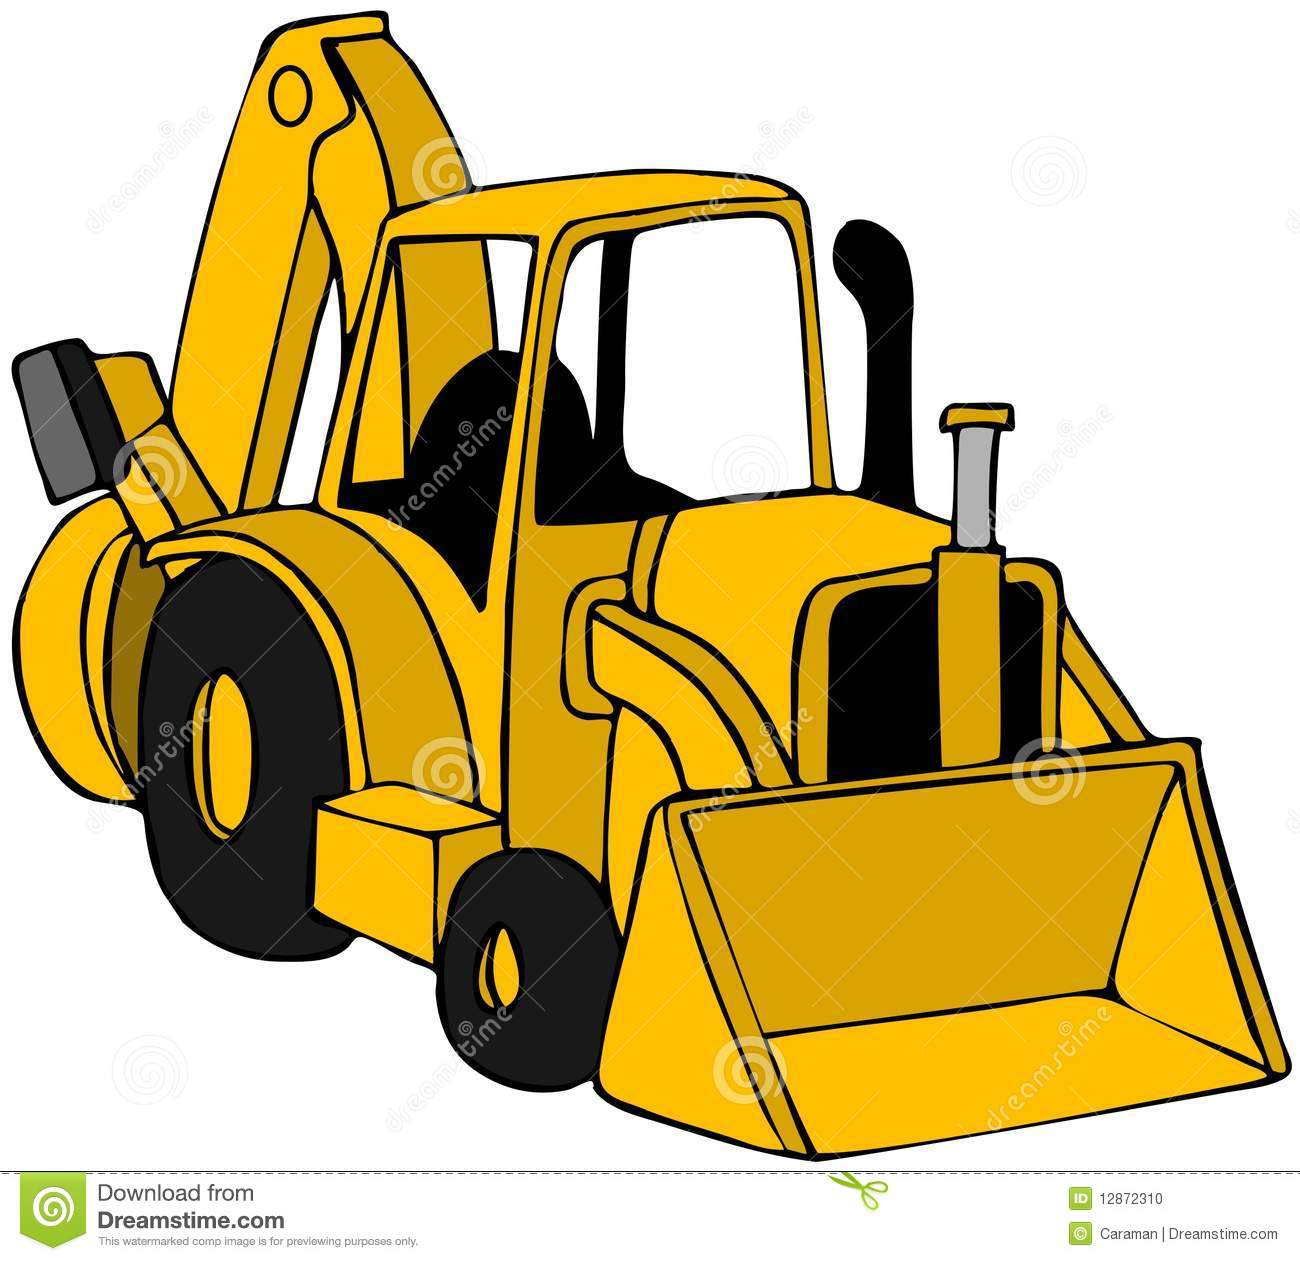 This illustration depicts a yellow construction backhoe.